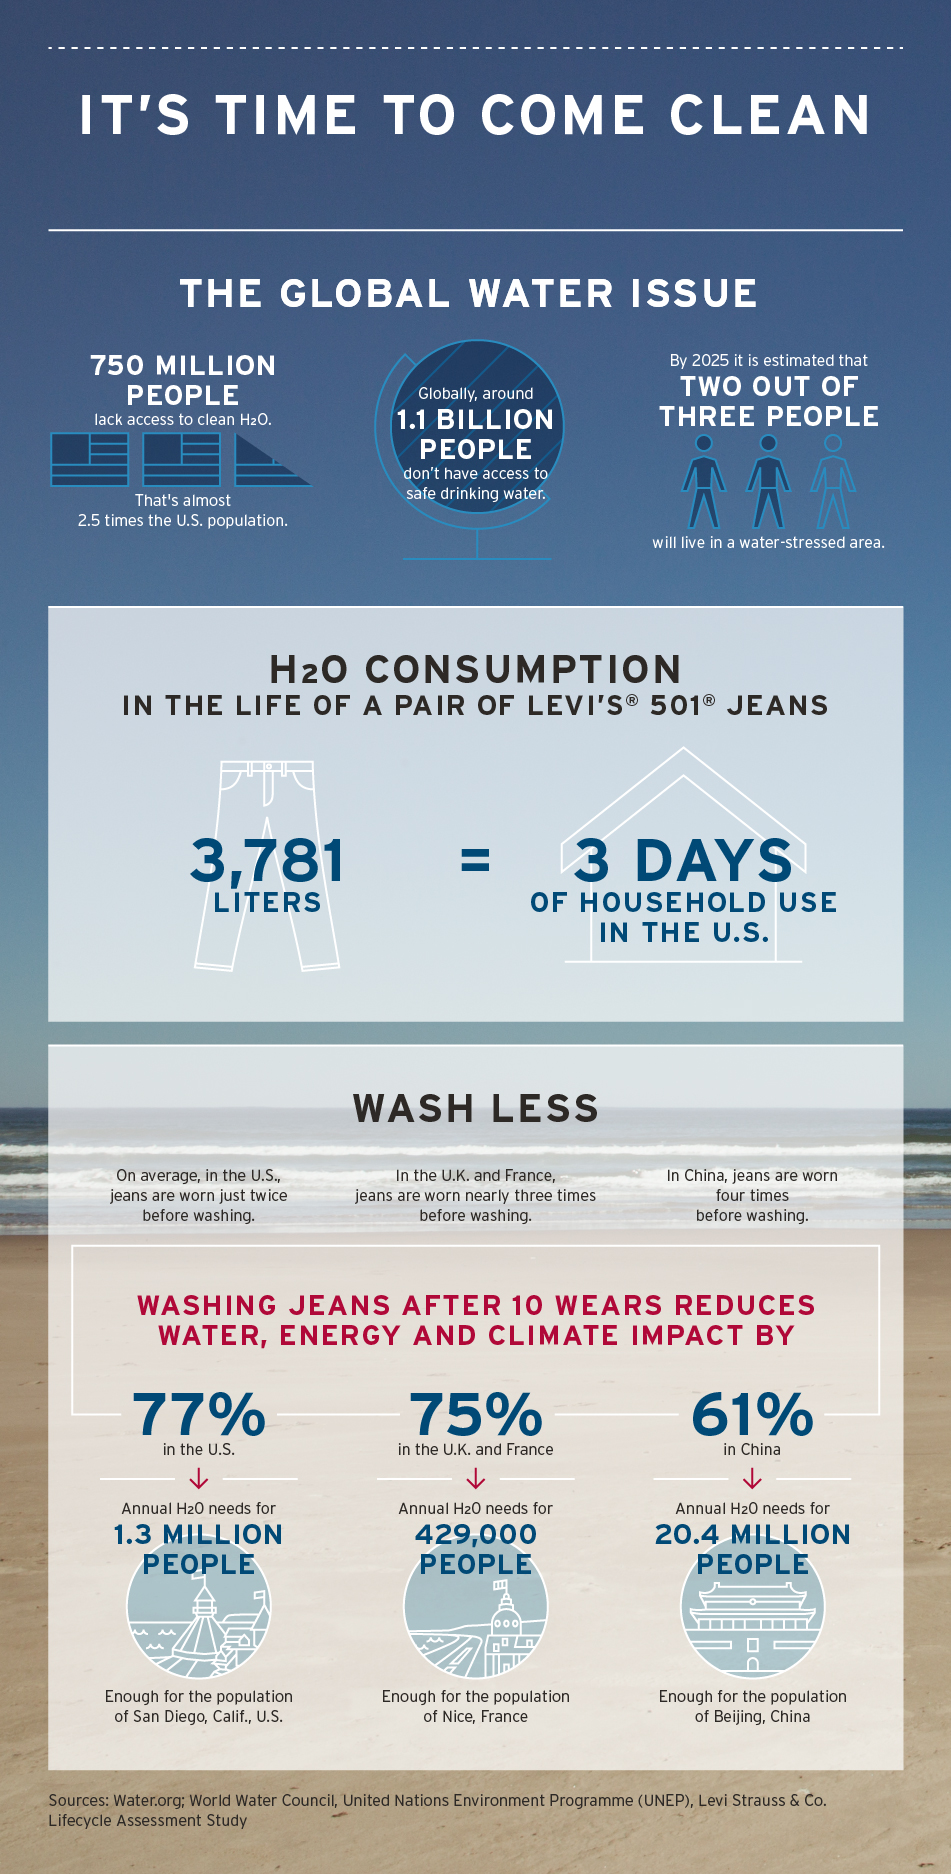 Levi Strauss LCA Infographic - It's Time to Come Clean